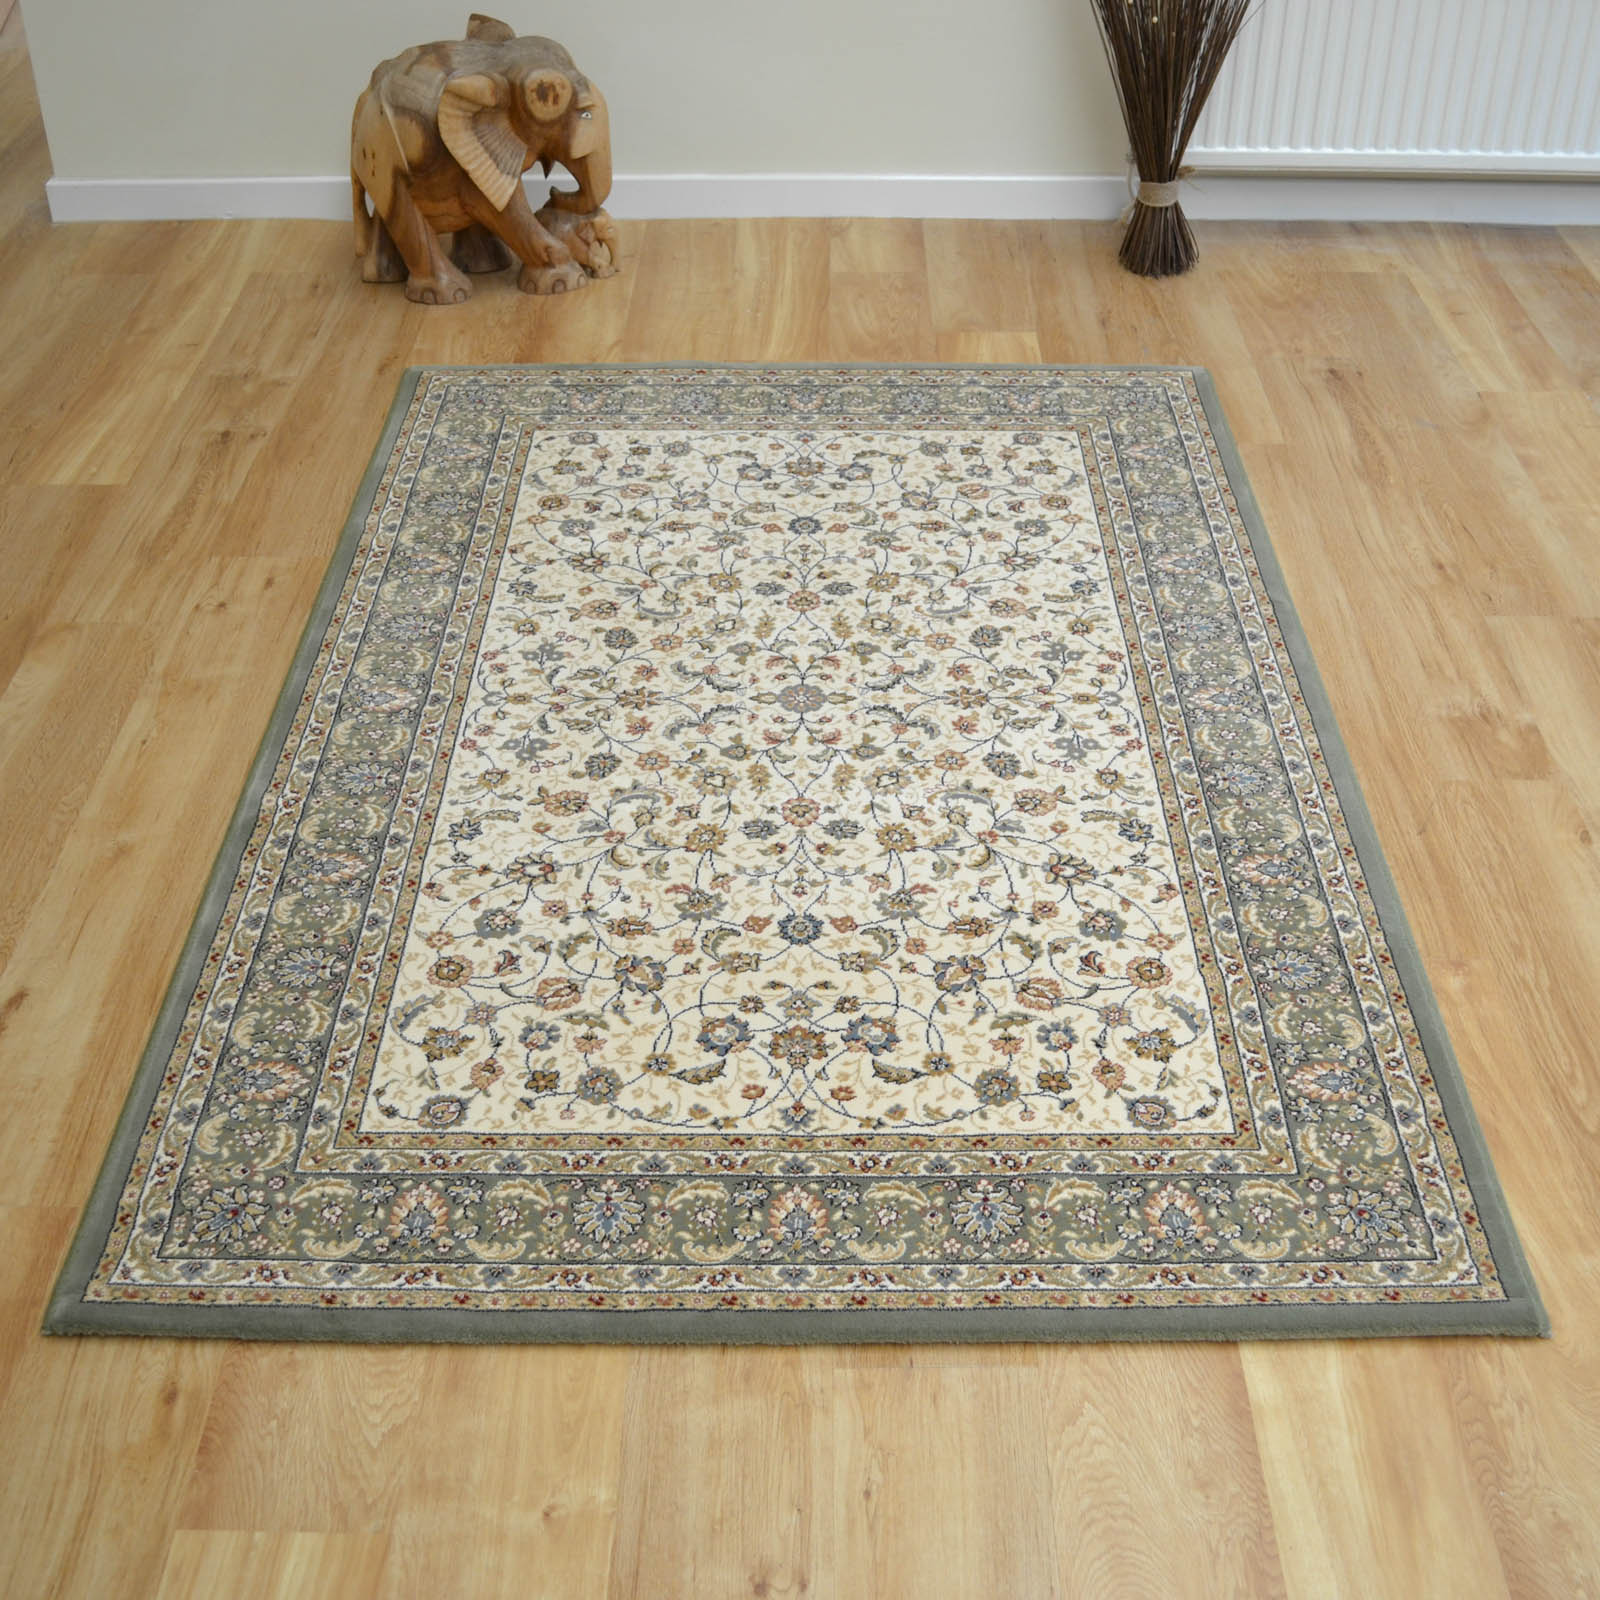 Da Vinci Rugs 57221 6444 in Cream and Green